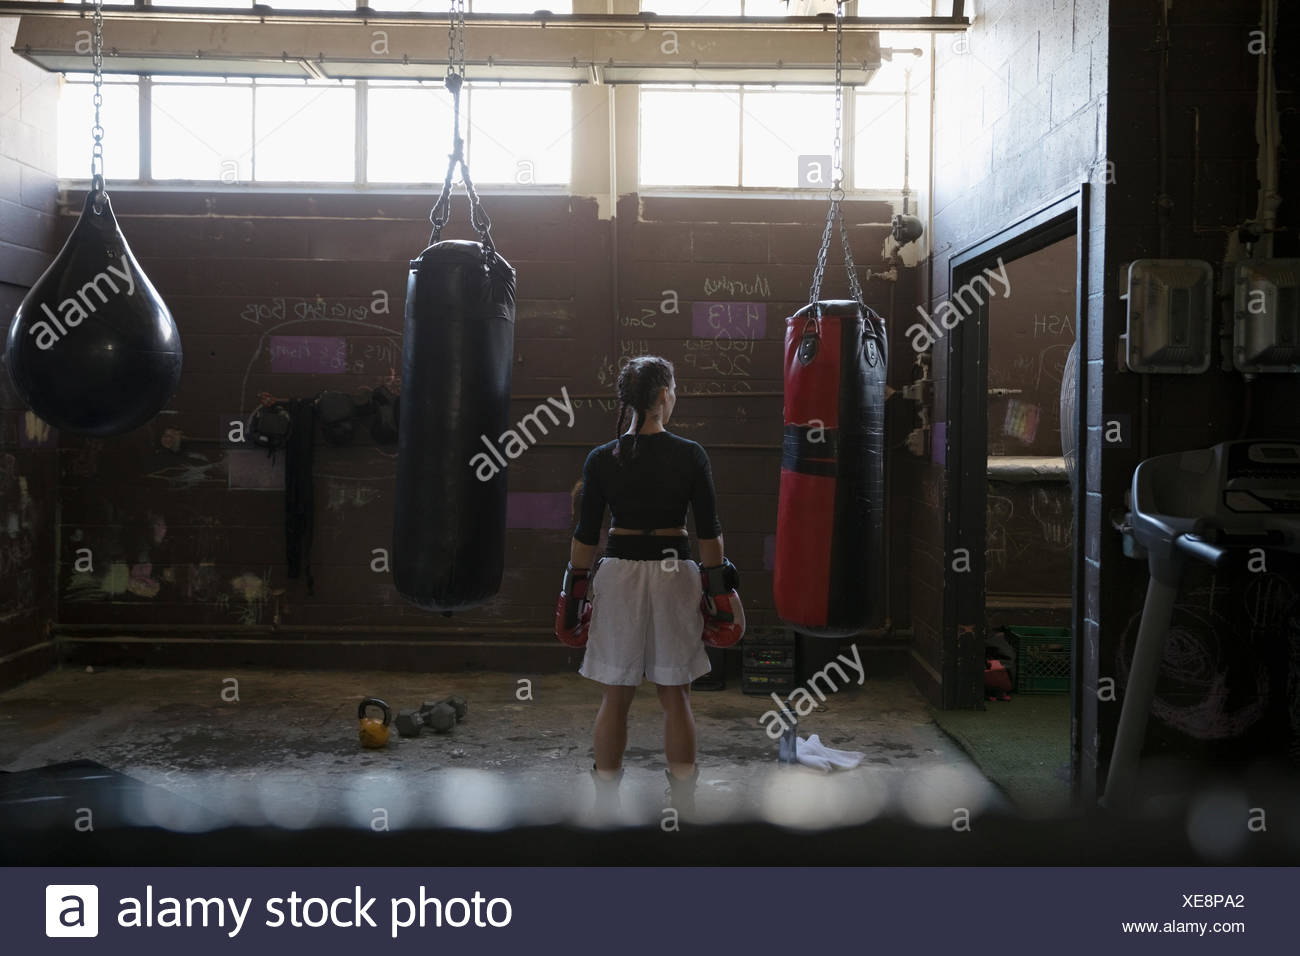 Female boxer standing at punching bags in gritty gym - Stock Image